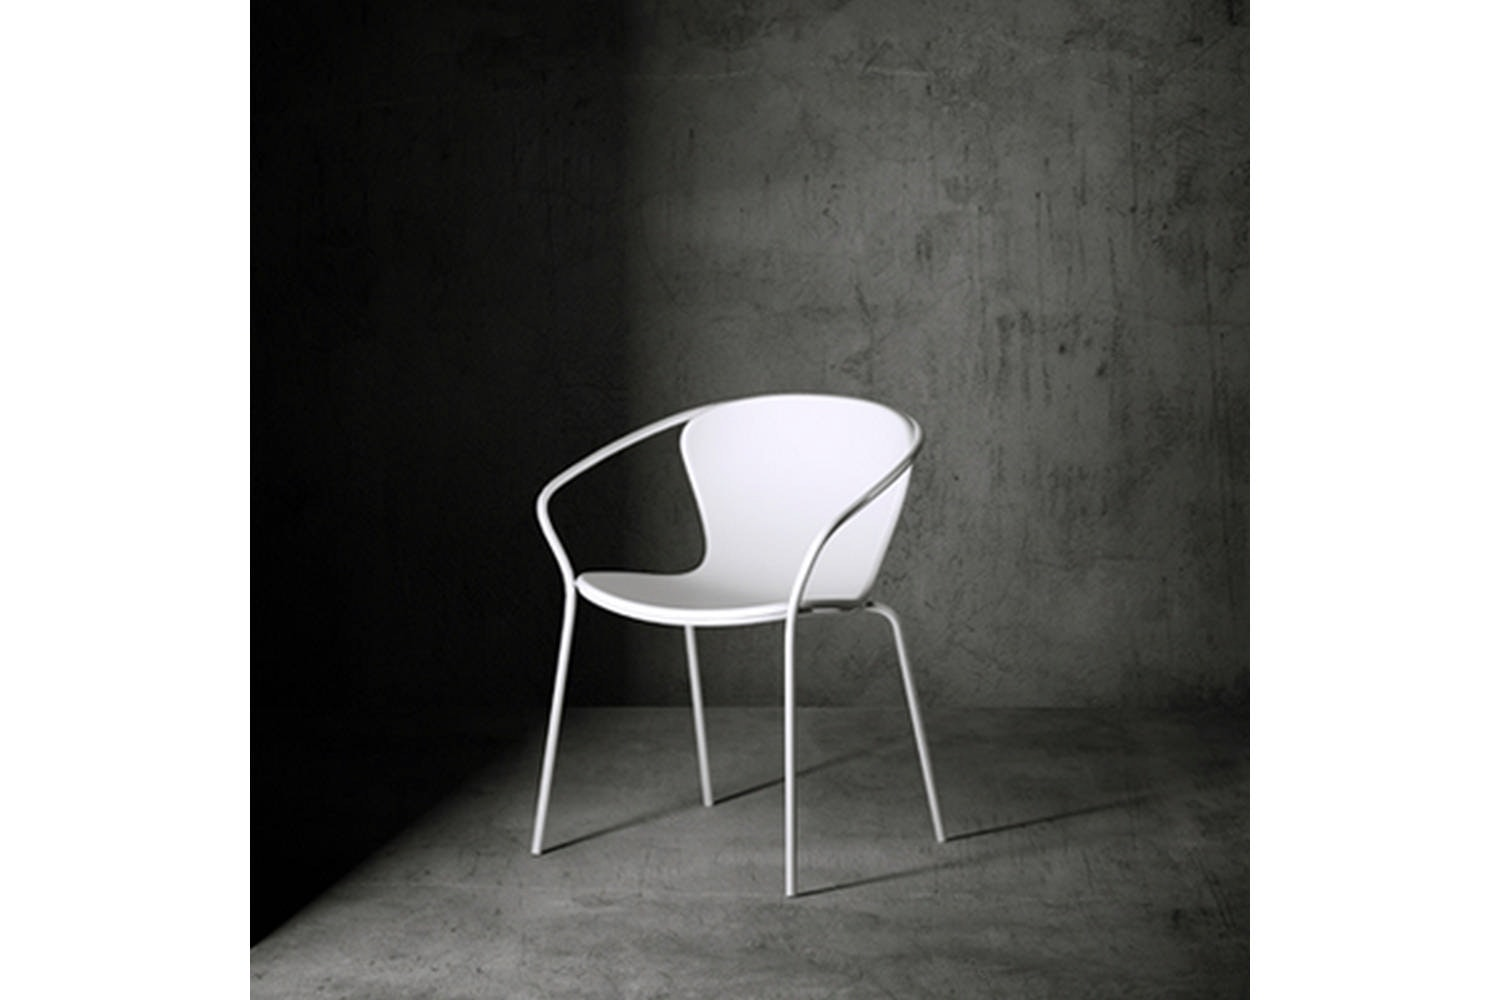 Solea Chair with Armrests by Giovanni Giacobone & Massimo Roj for Serralunga